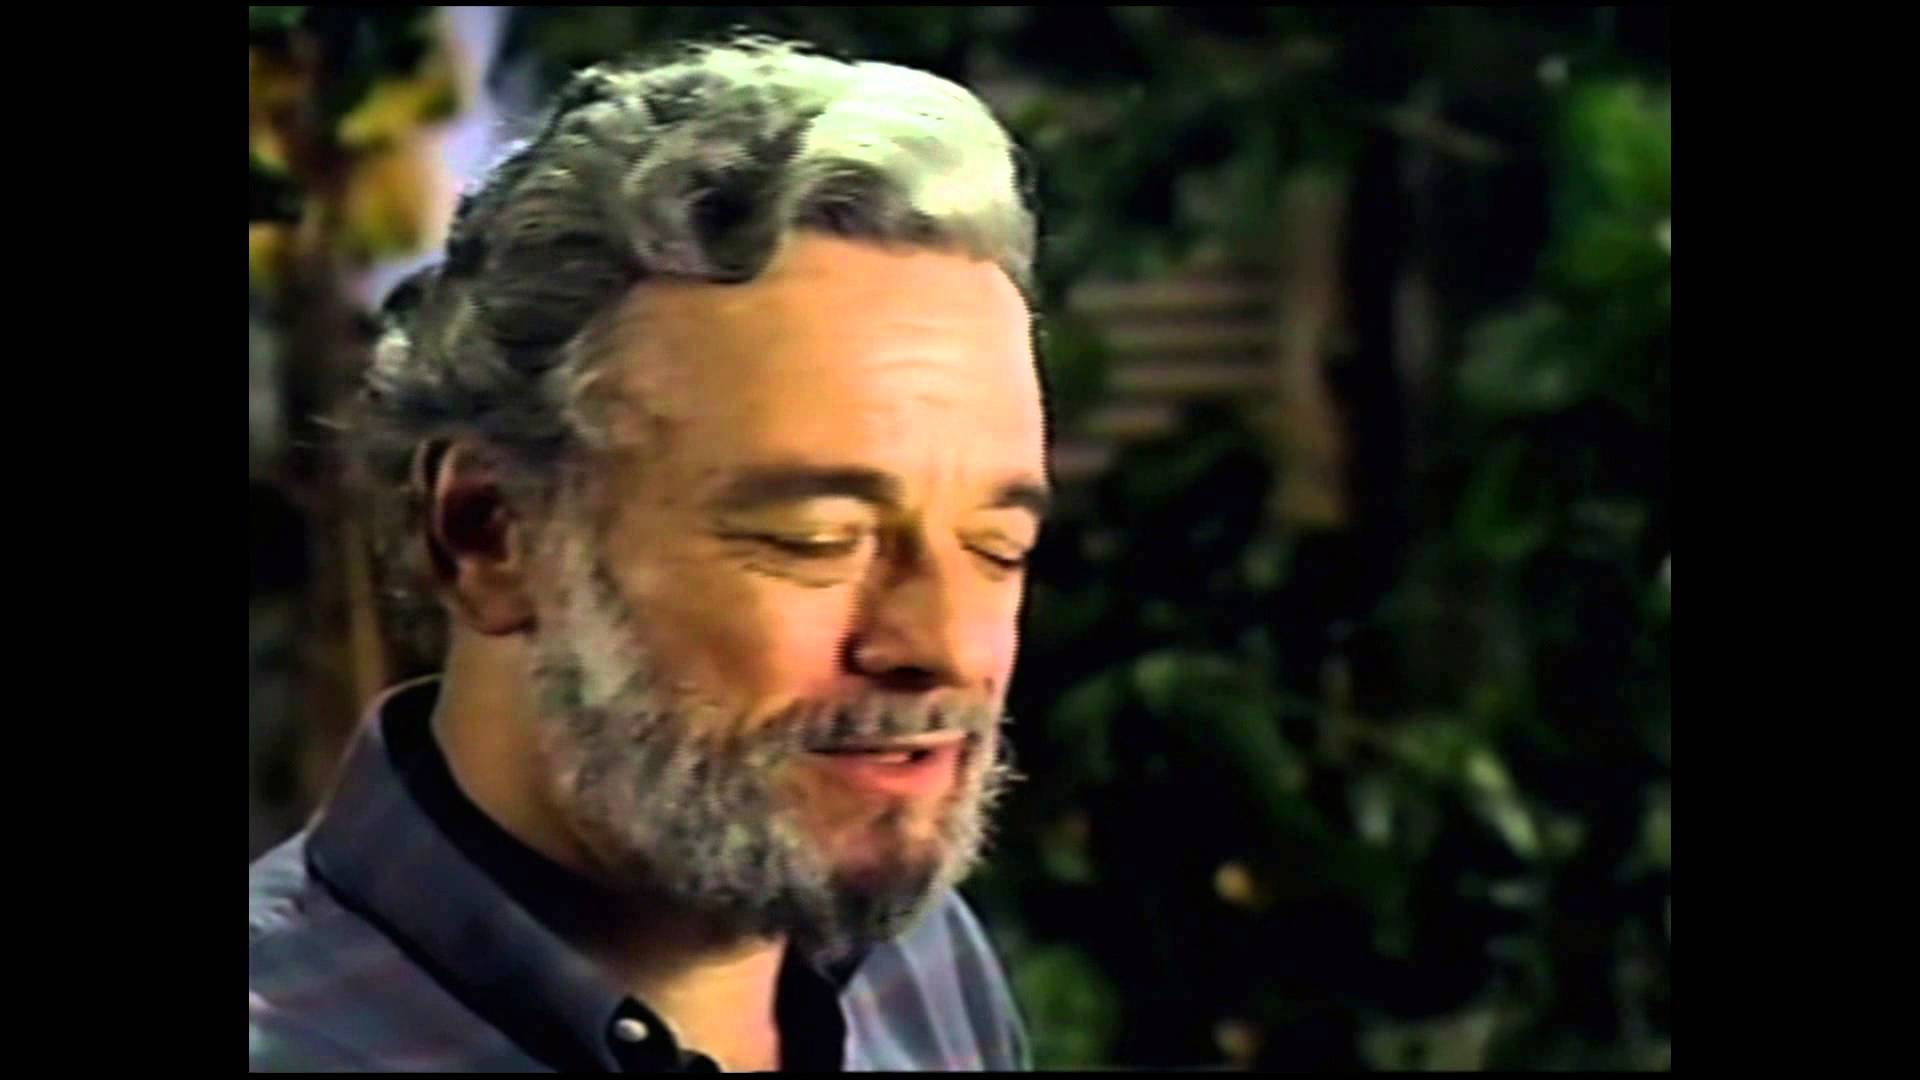 Authors James Lapine and Stephen Sondheim give final thoughts on Into the Woods